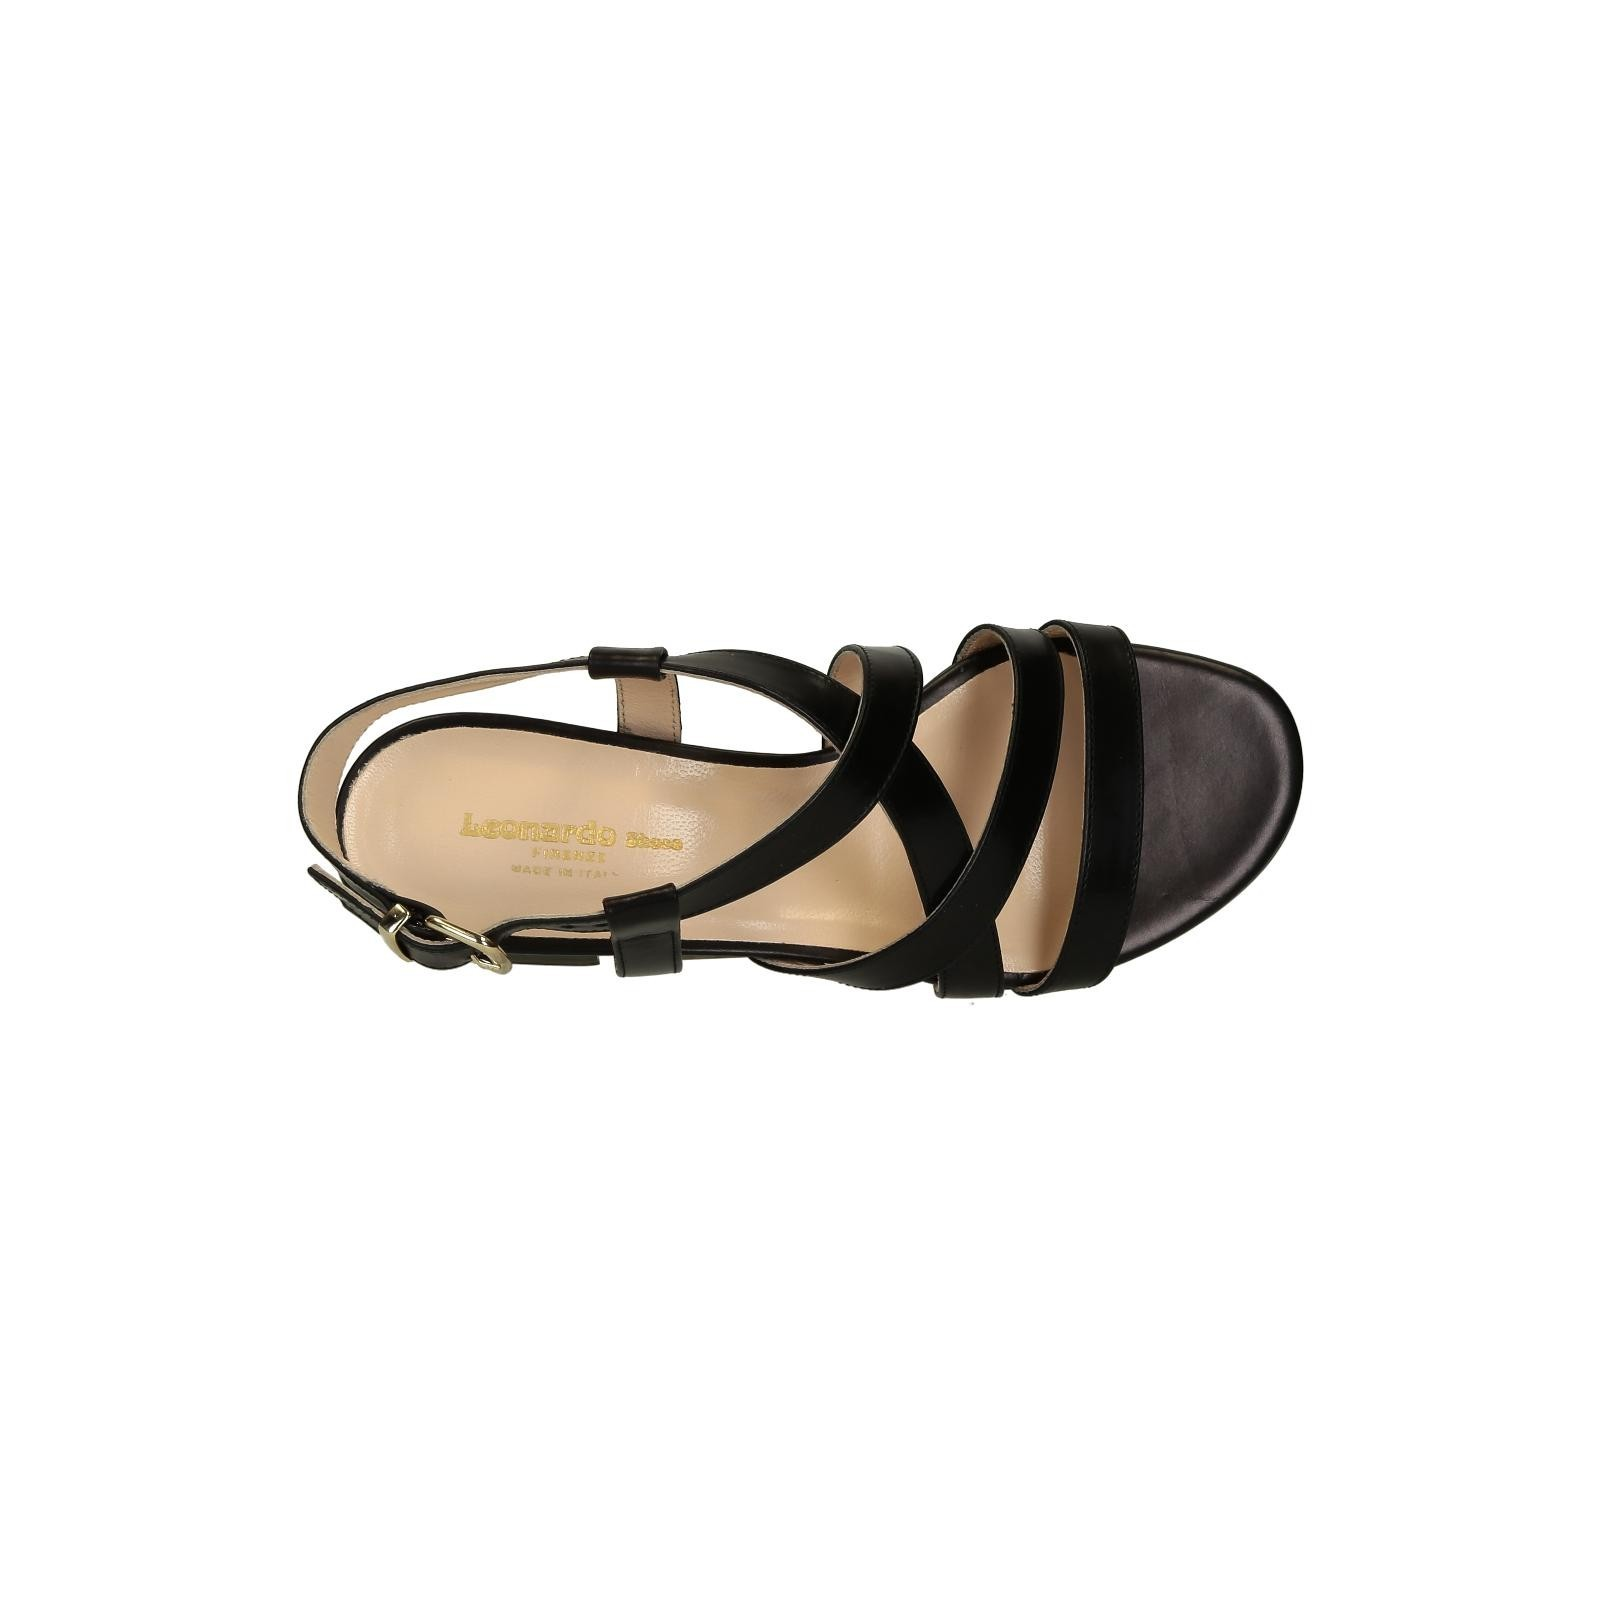 Black leather sandals low heel -  Low Heels Black Leather Strappy Sandals For Women 5